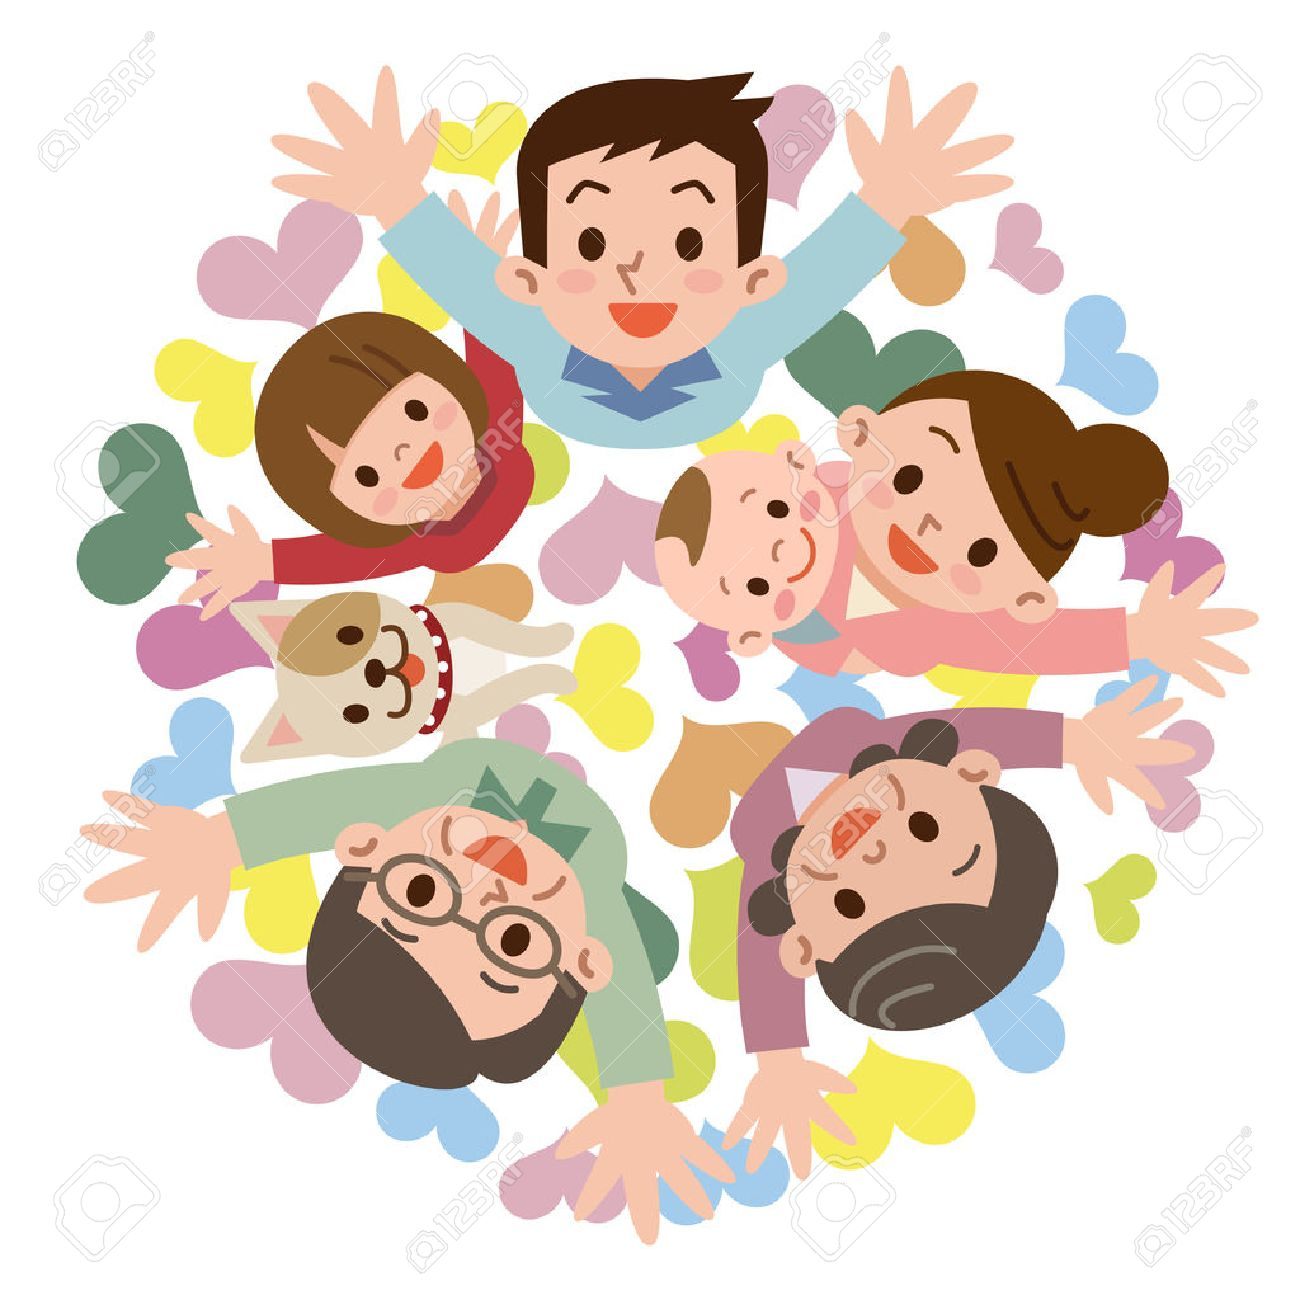 170 570 happy family stock vector illustration and royalty free rh 123rf com happy family clipart free happy family clipart free